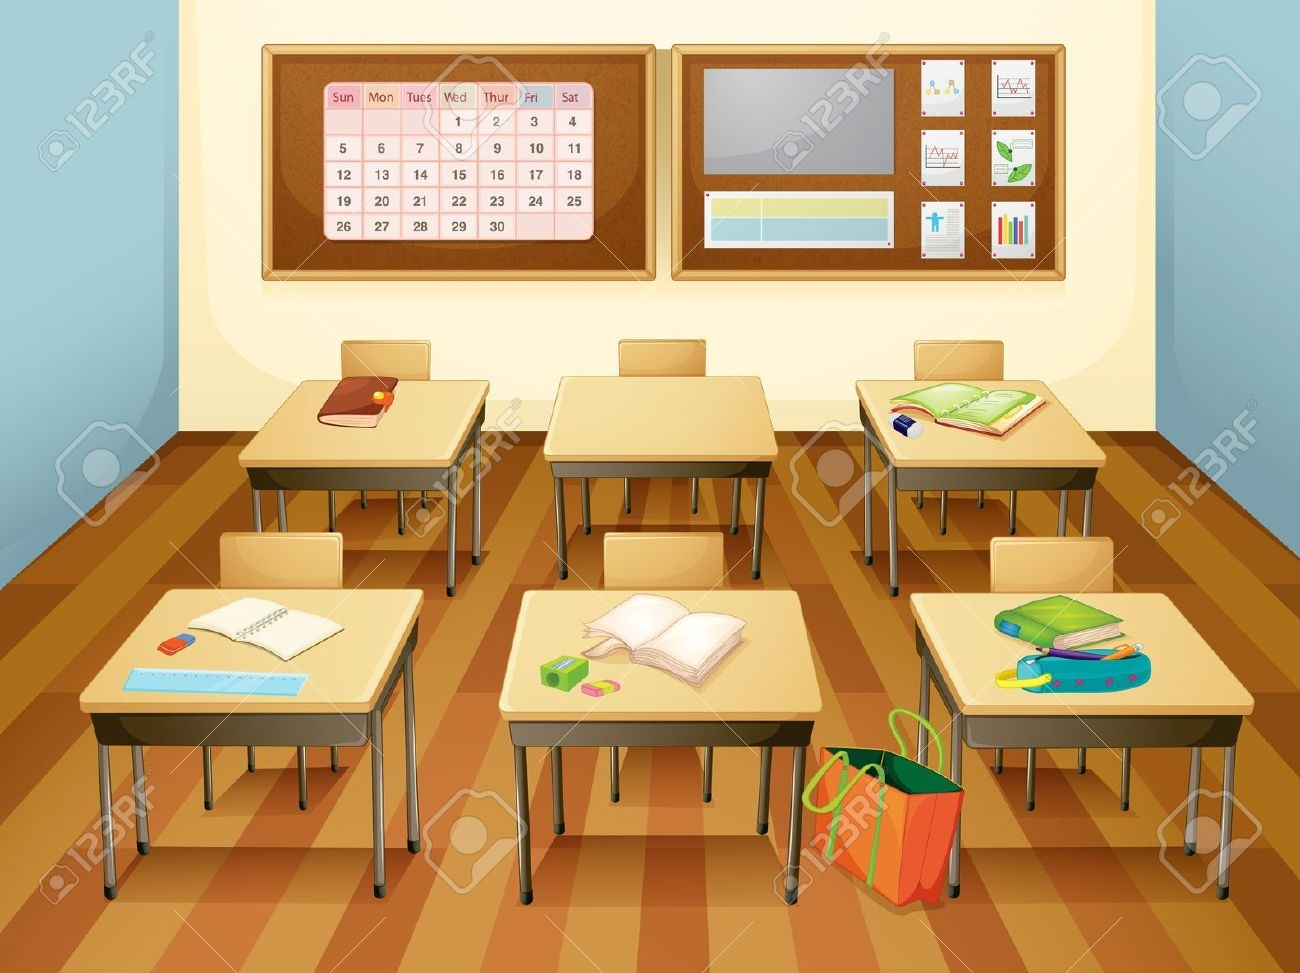 free classroom clipart